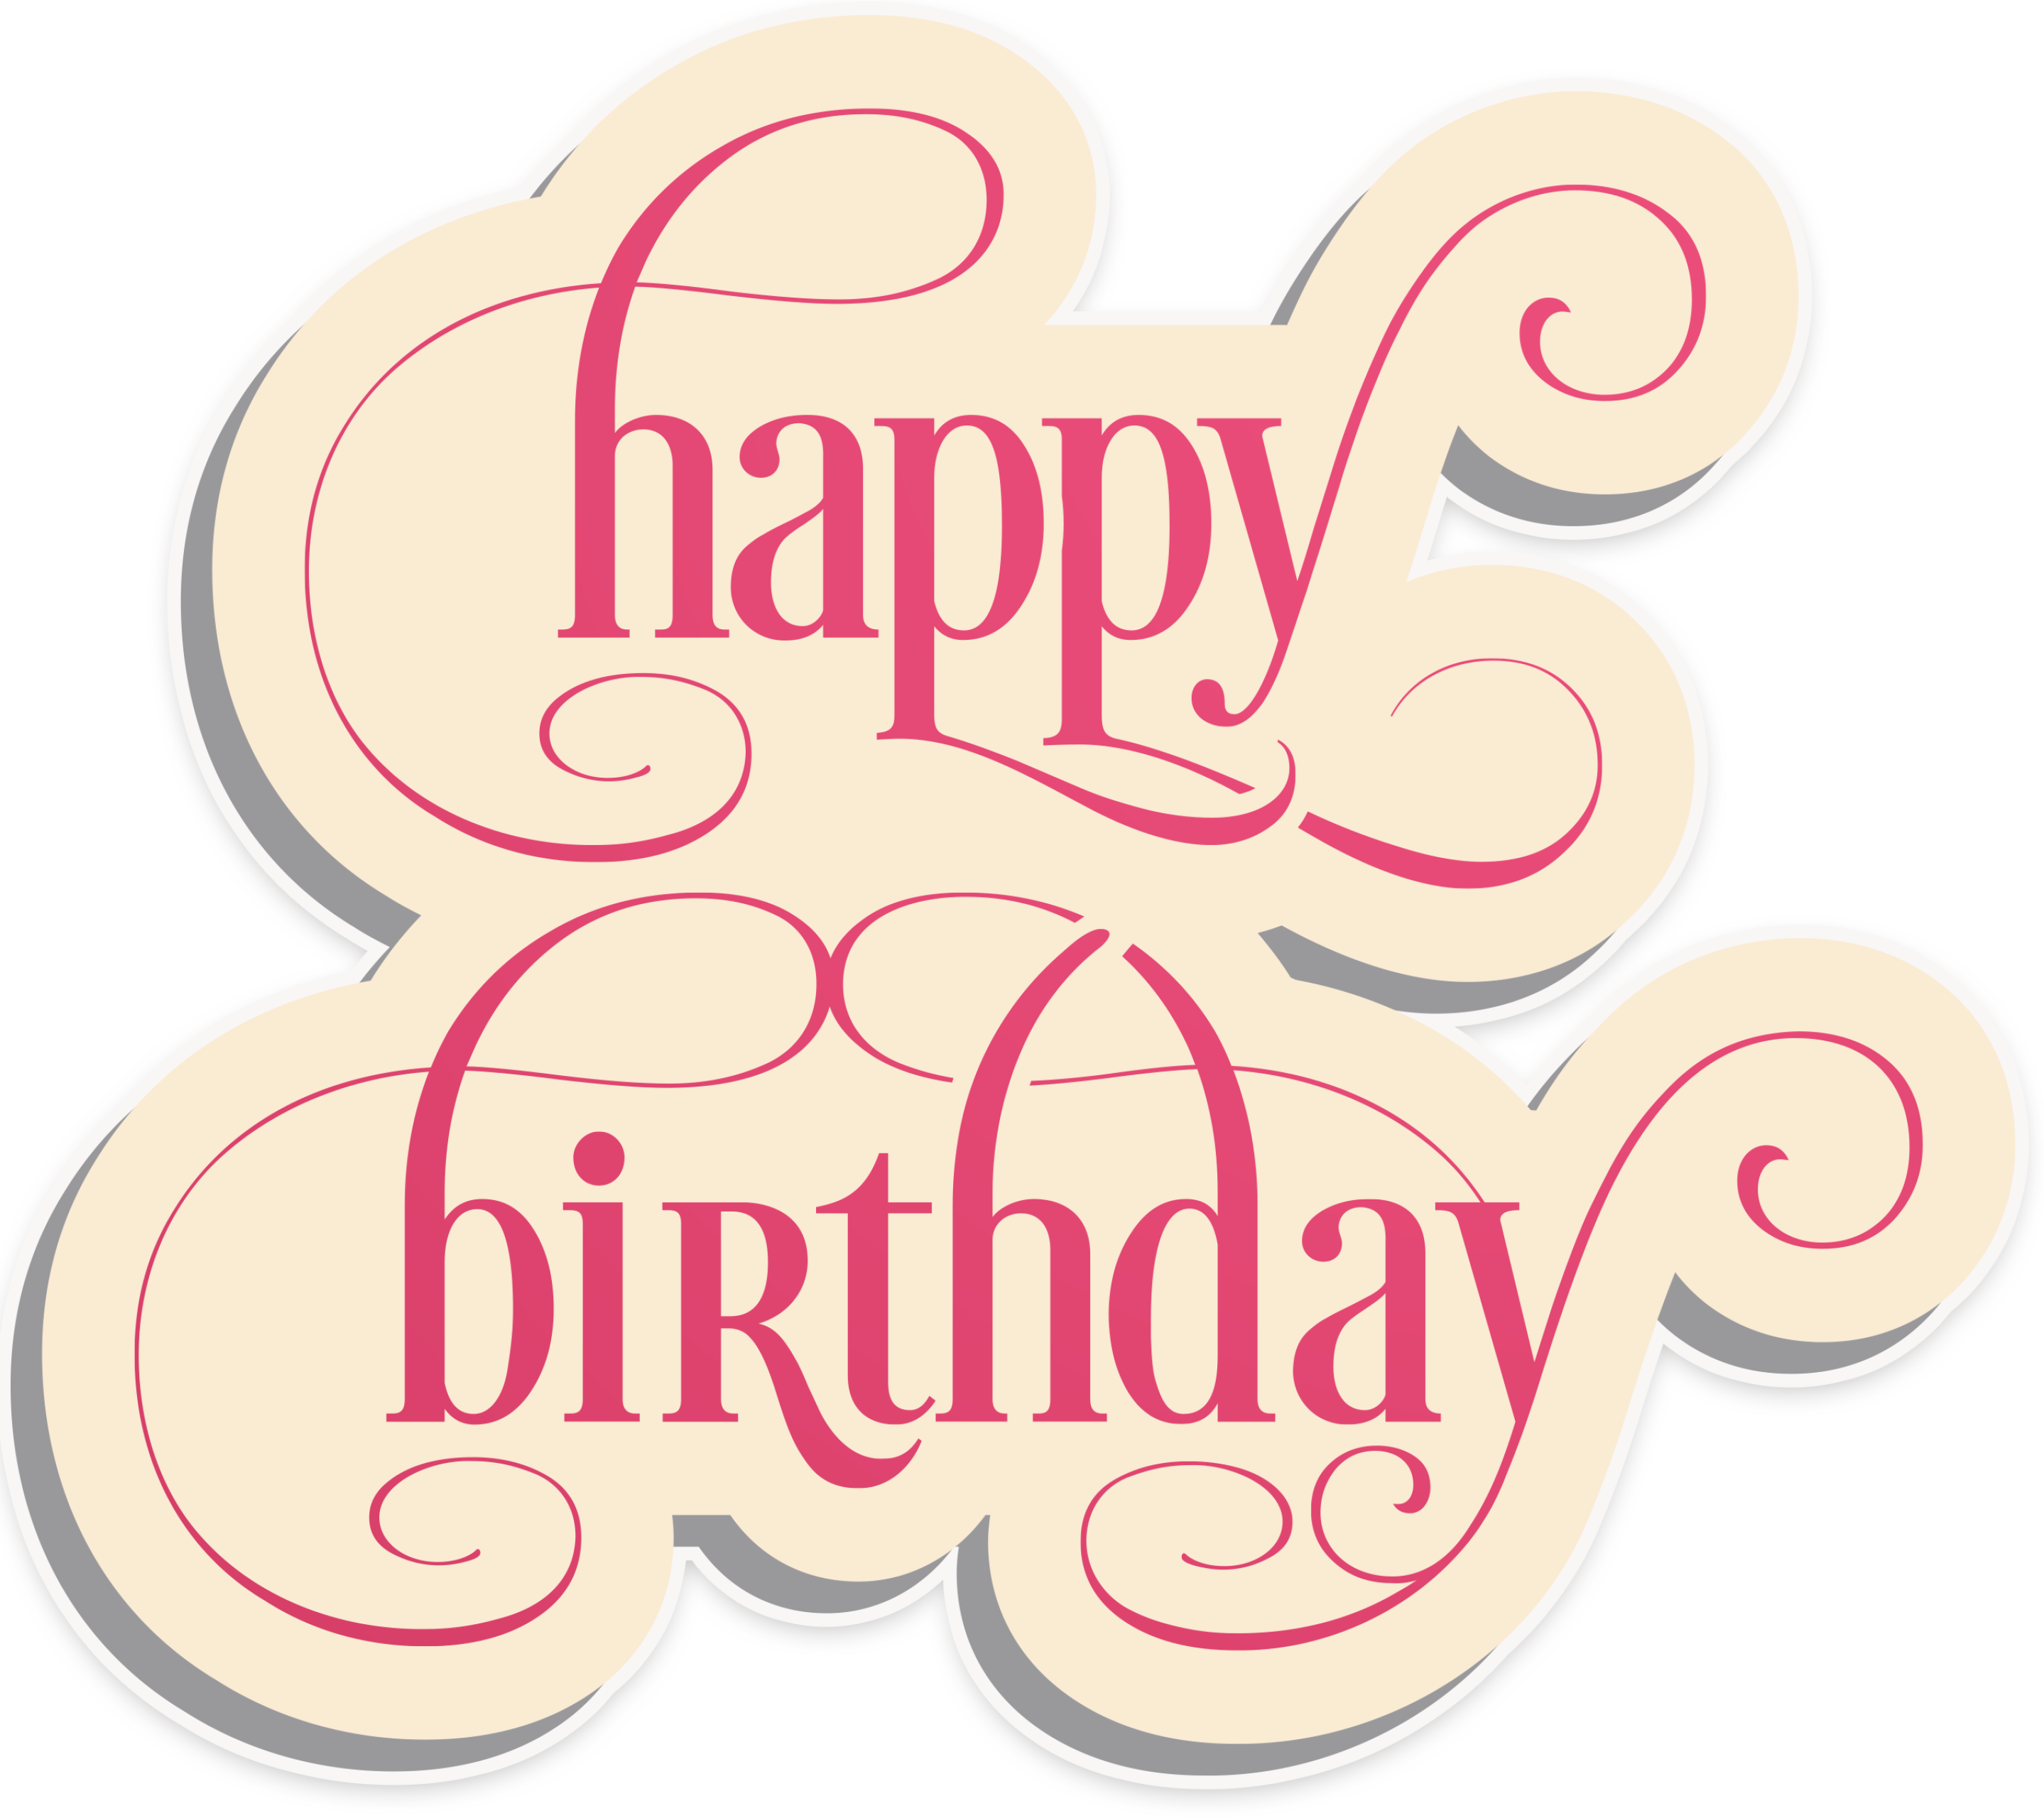 Happy birthday vintage png. Family ideas